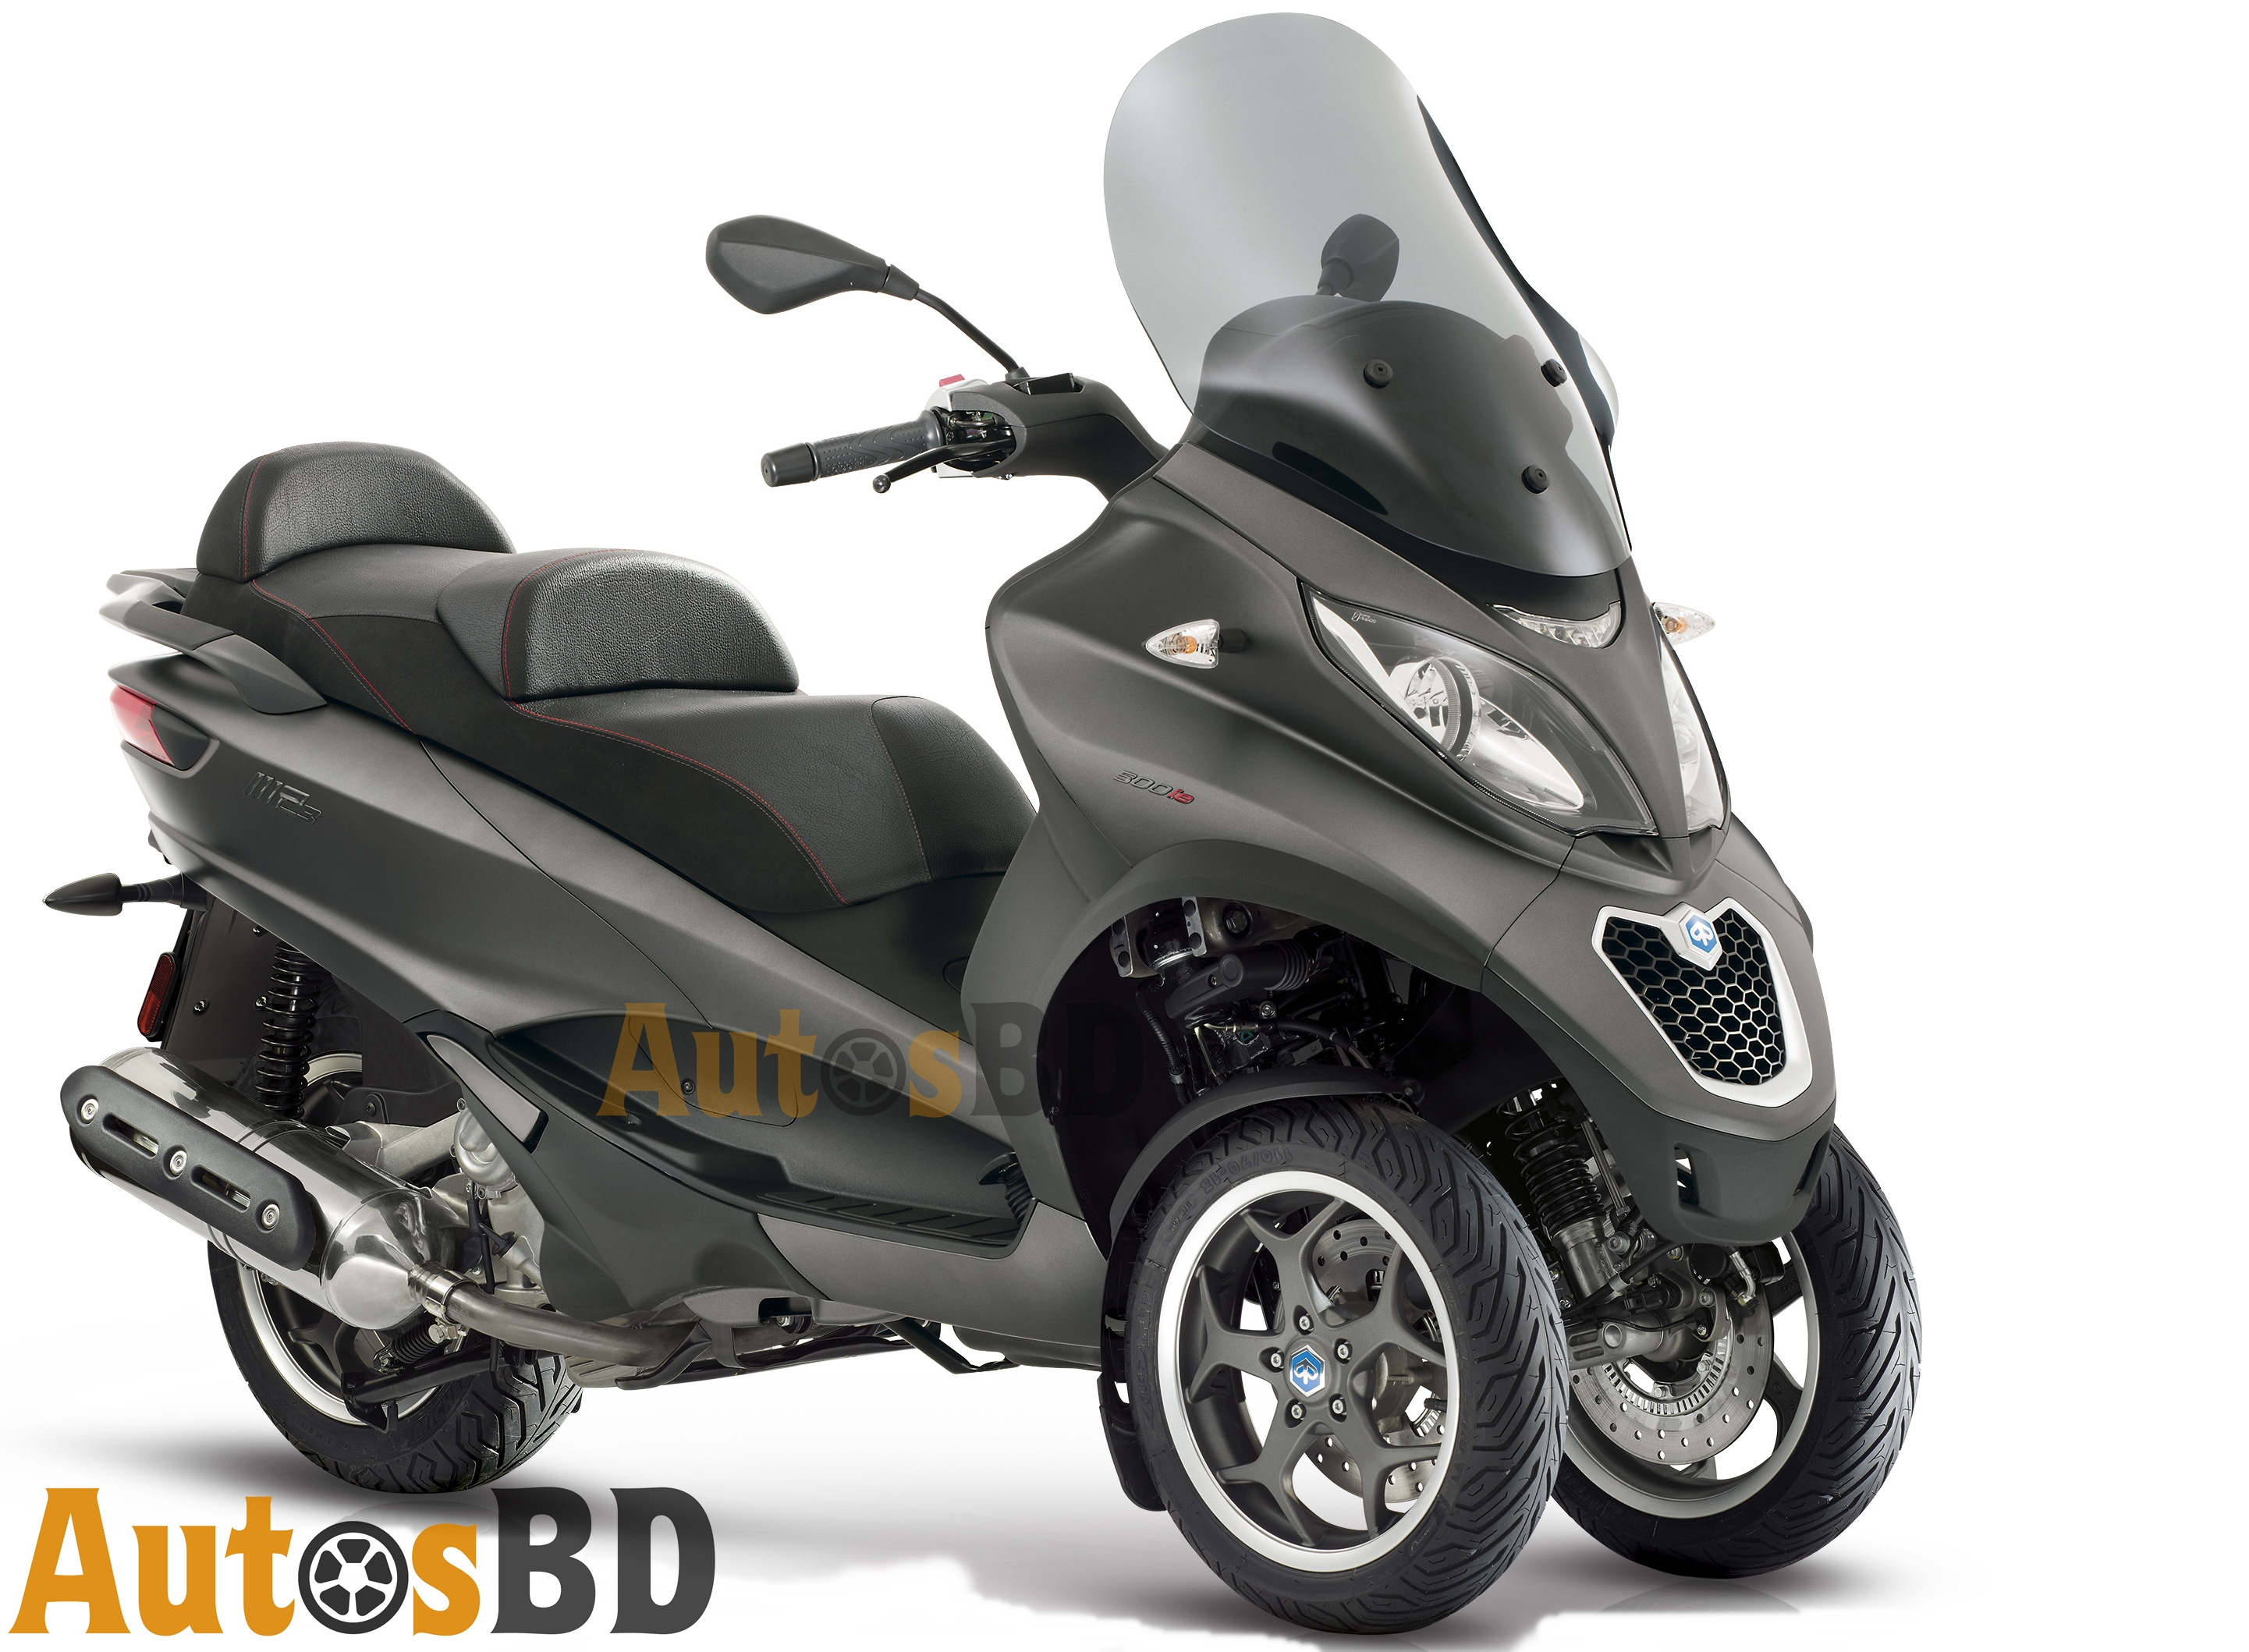 piaggio mp3 500 sport abs motorcycle price. Black Bedroom Furniture Sets. Home Design Ideas